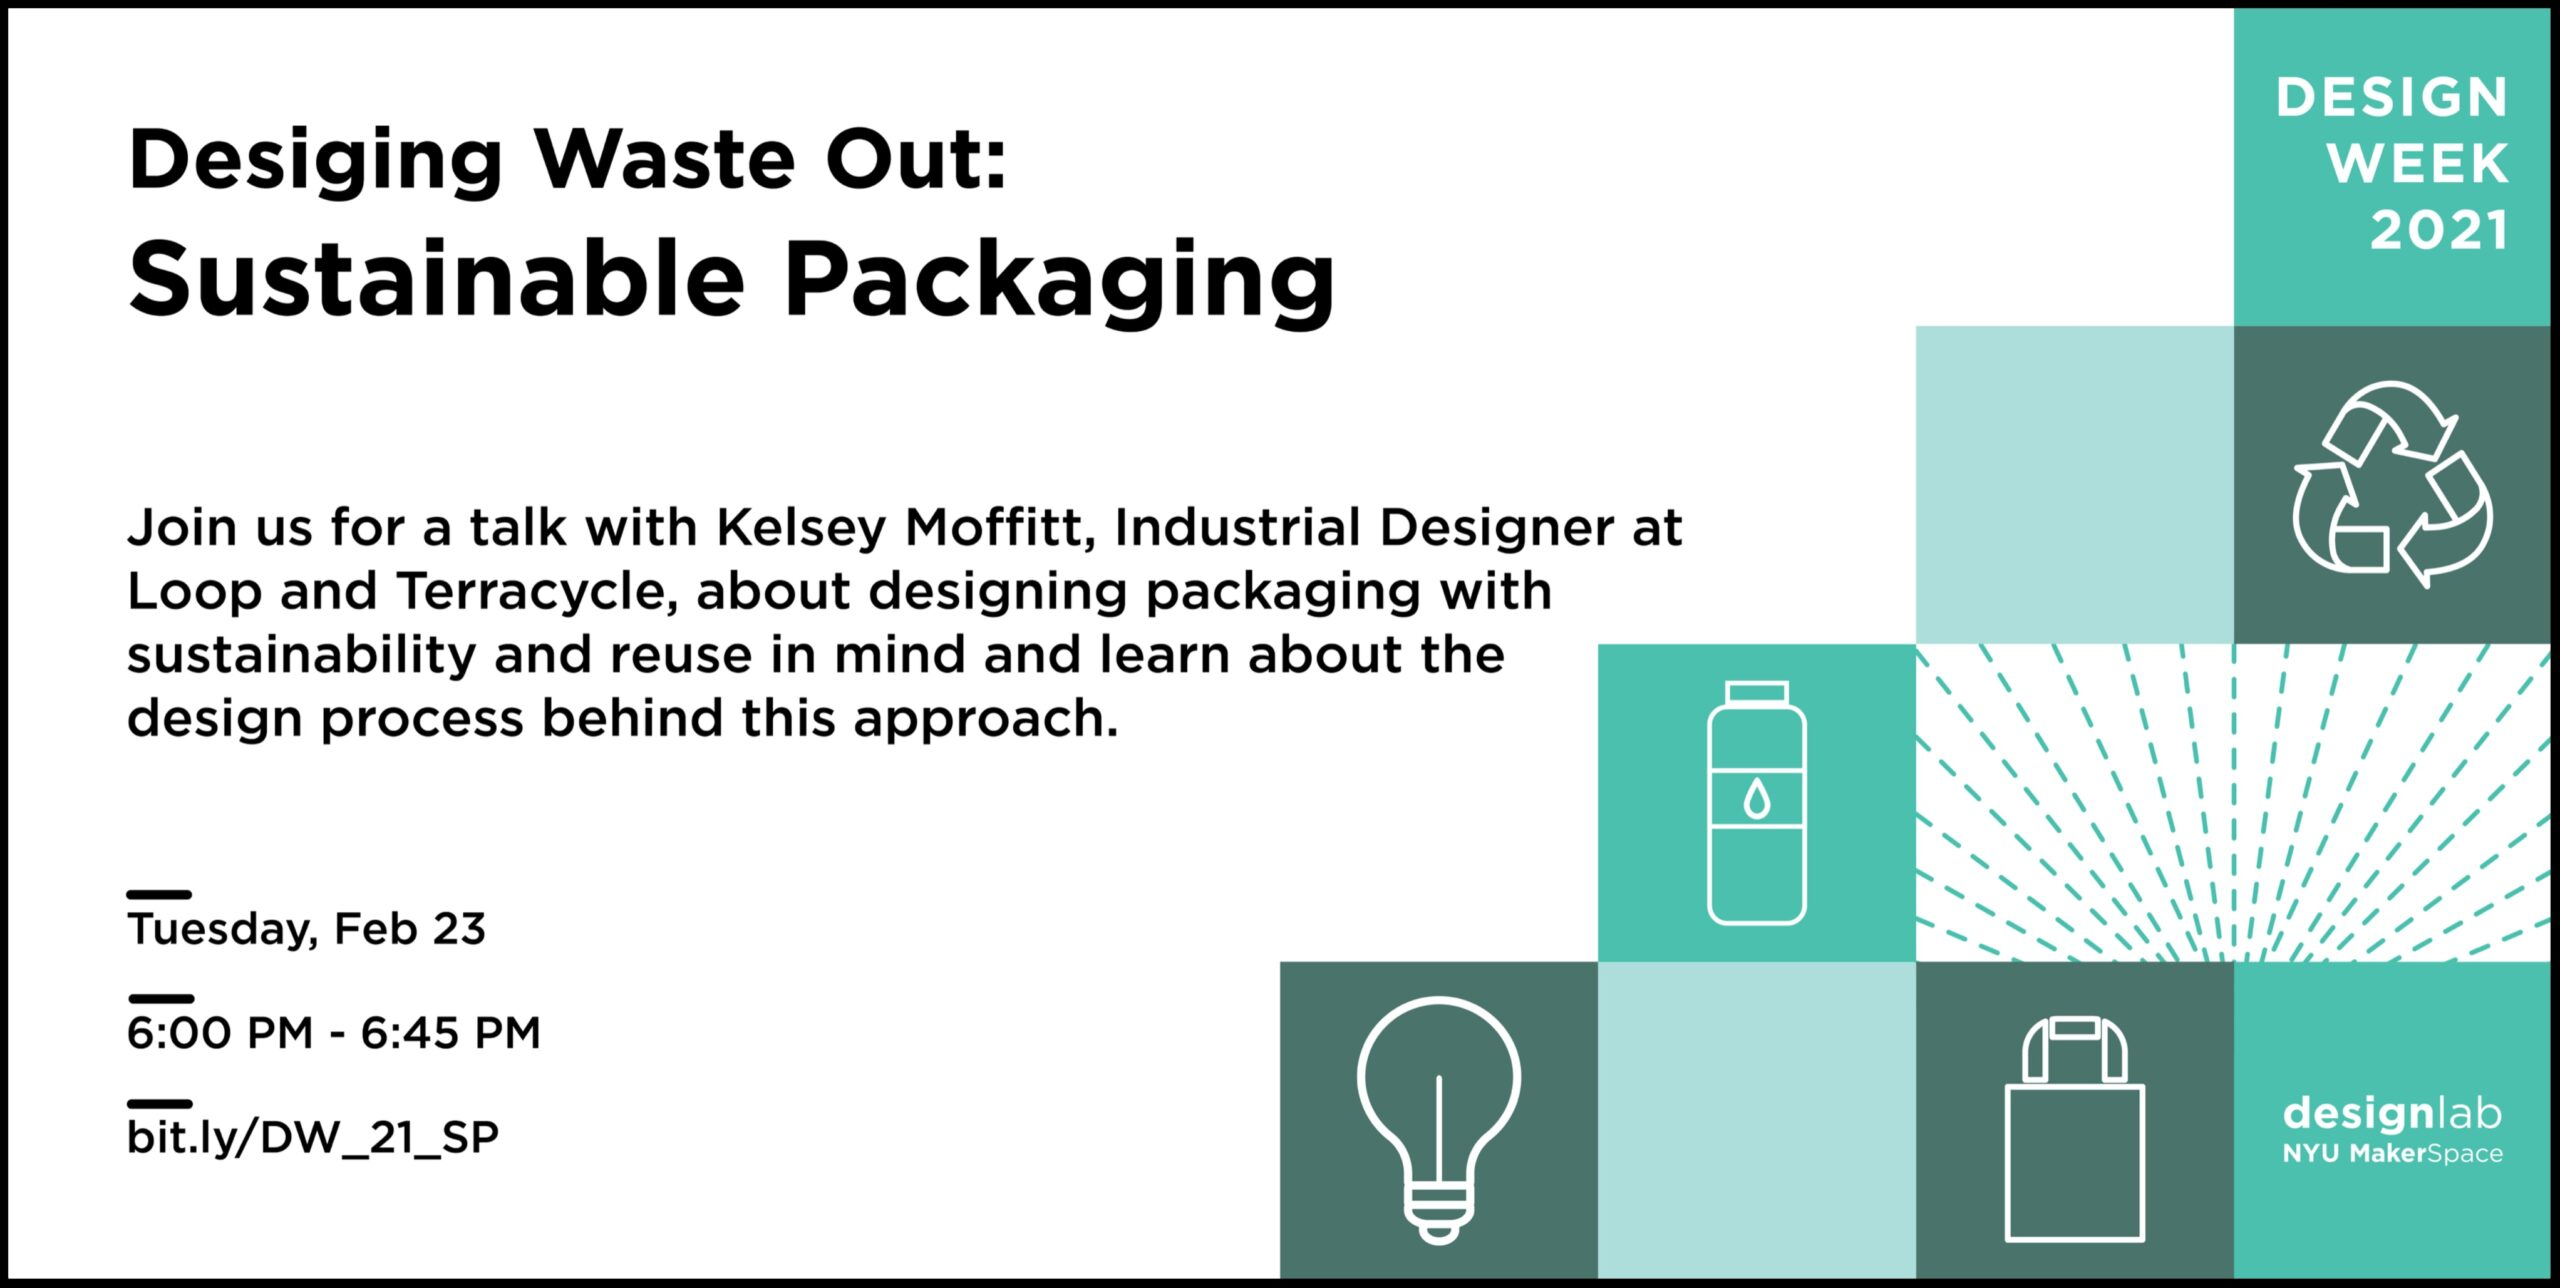 Design Week 2021 Sustainable Packaging Flyer